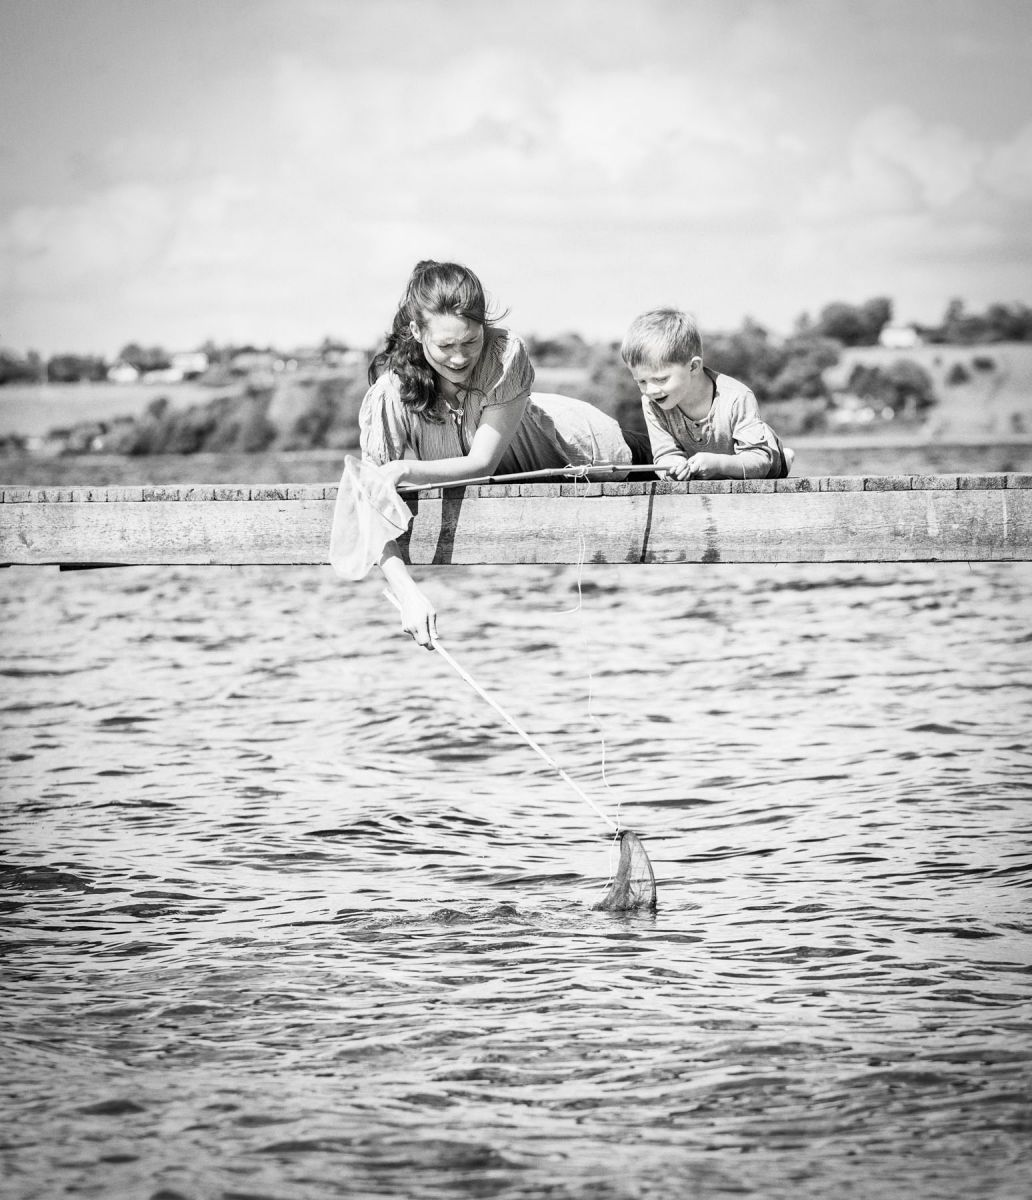 1j__rgen_spedsbjerg_ebbesen_photography_familie_family_mom_mor_datte_daughter_natur_nature_water_ocean_vand_hav_fiske_fishing_22